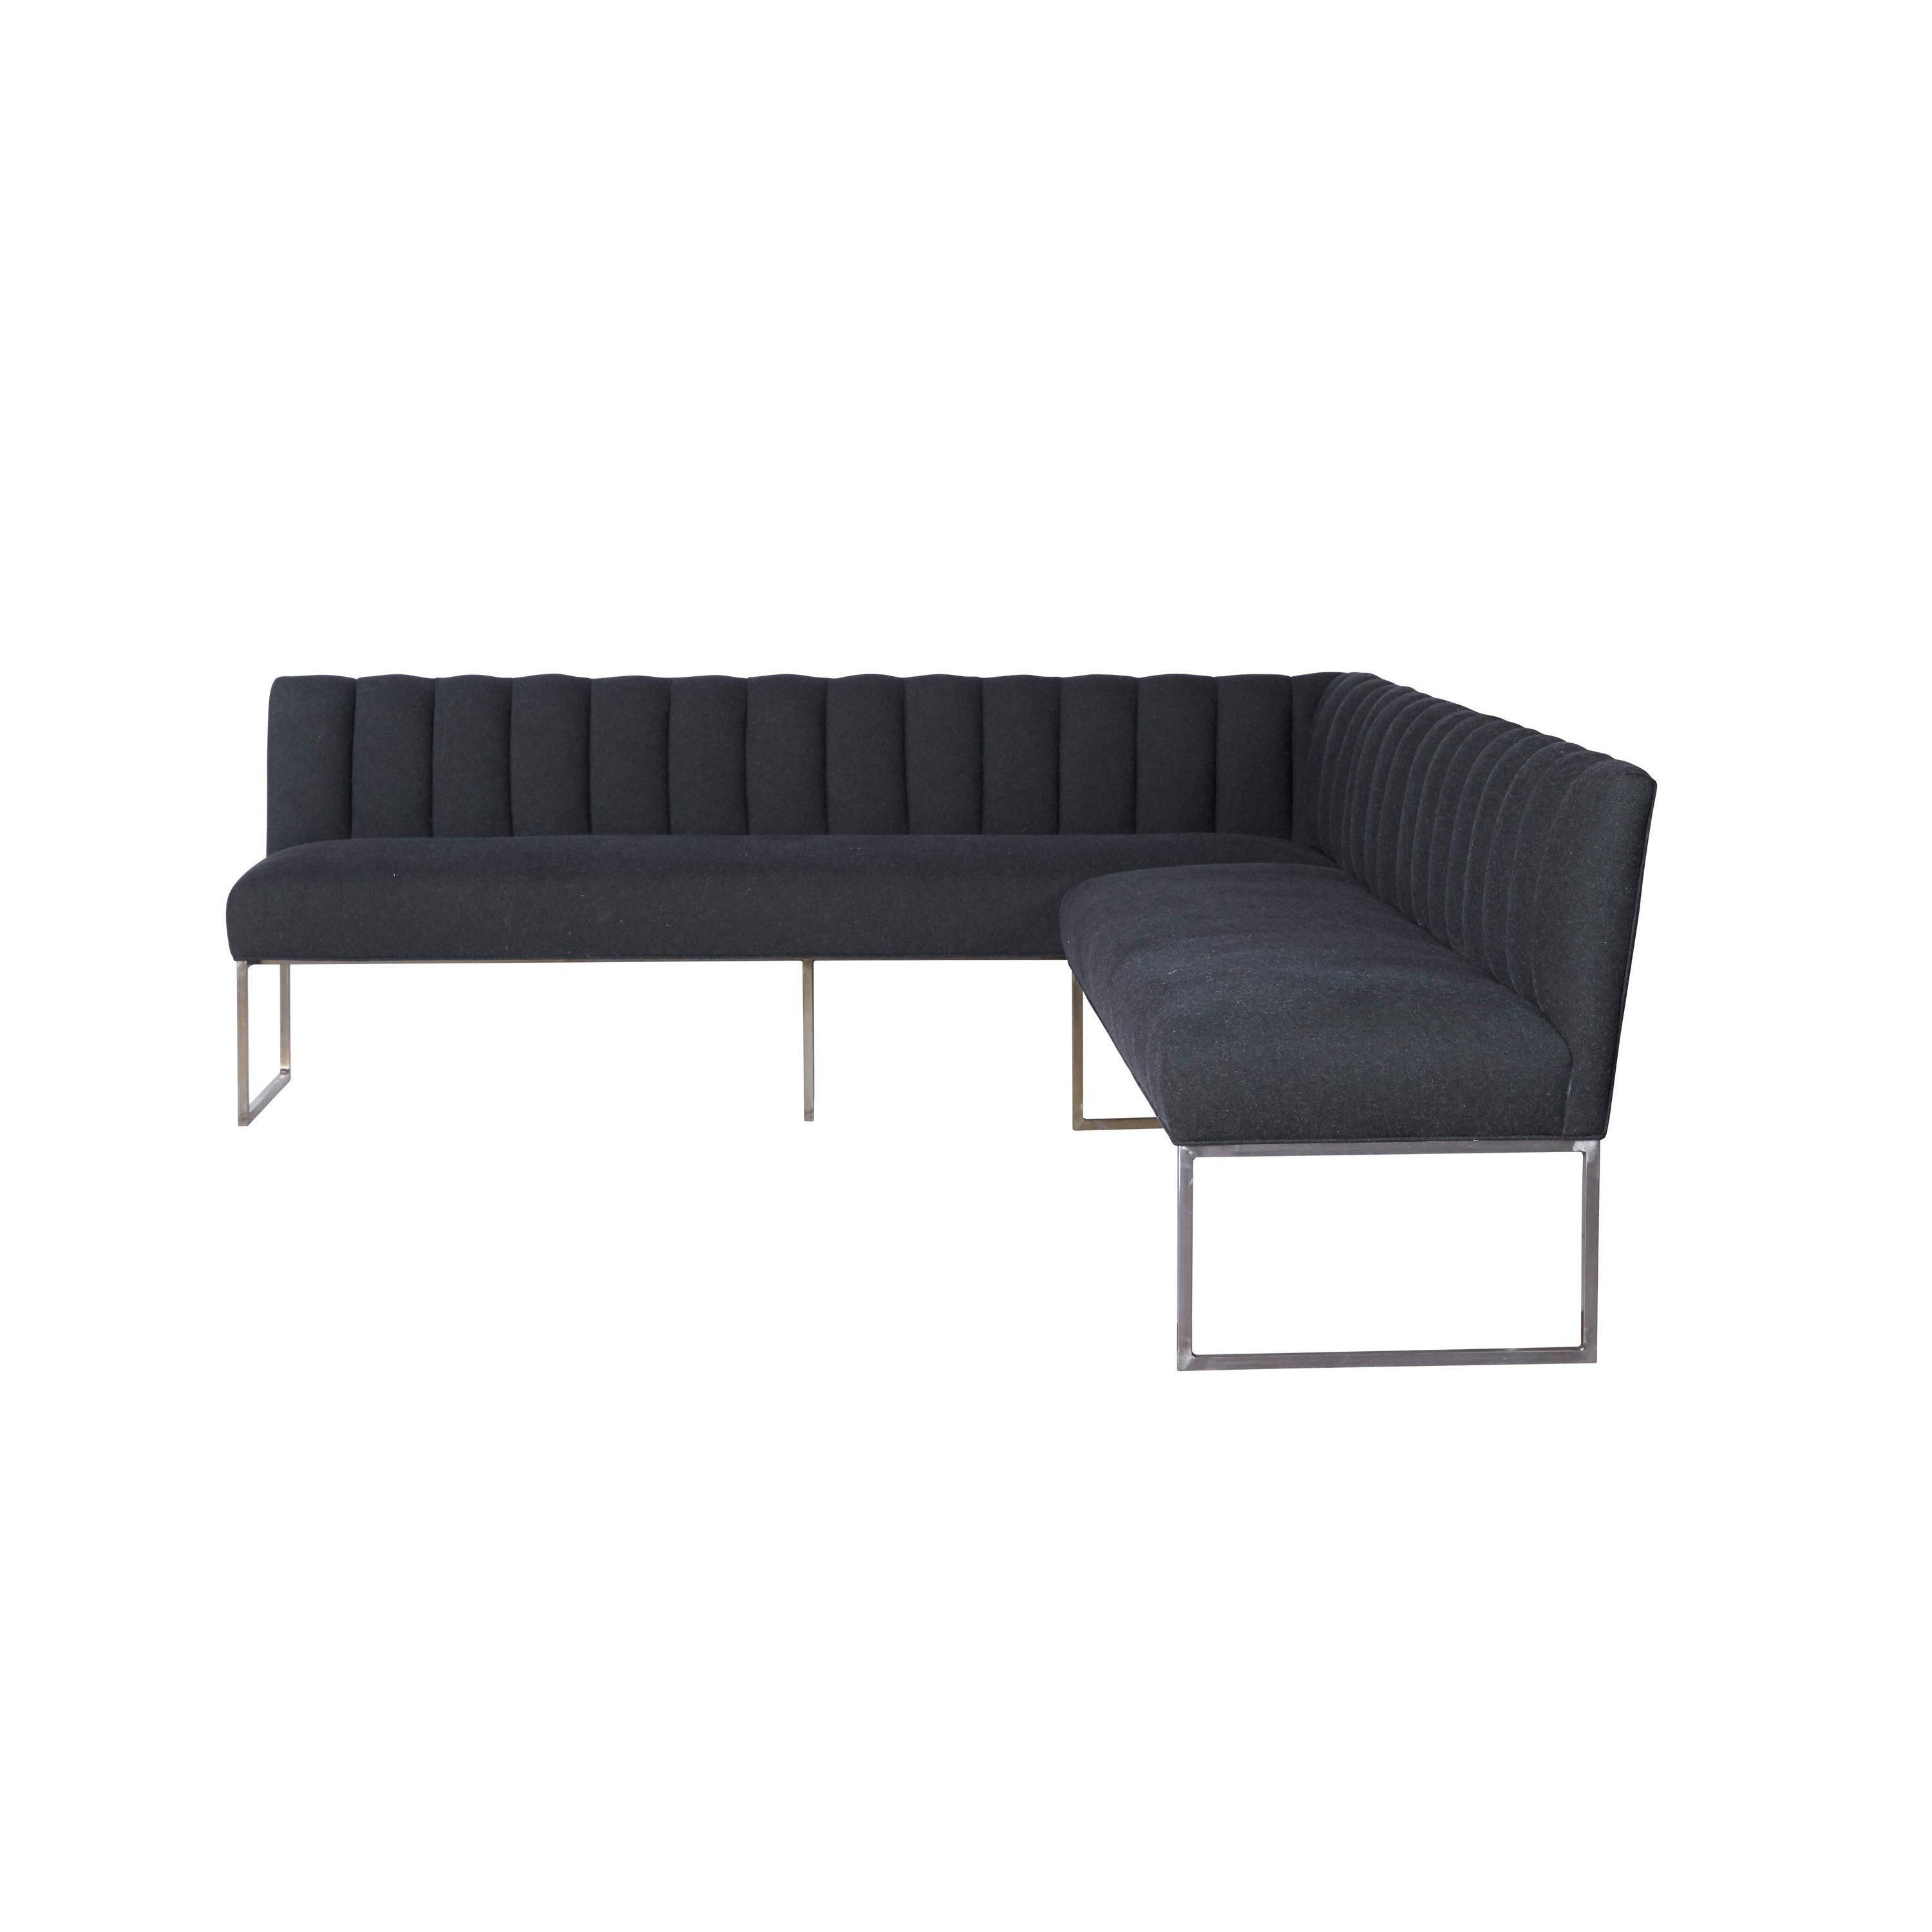 Cisco Brothers Enzo Banquette Furniture Online